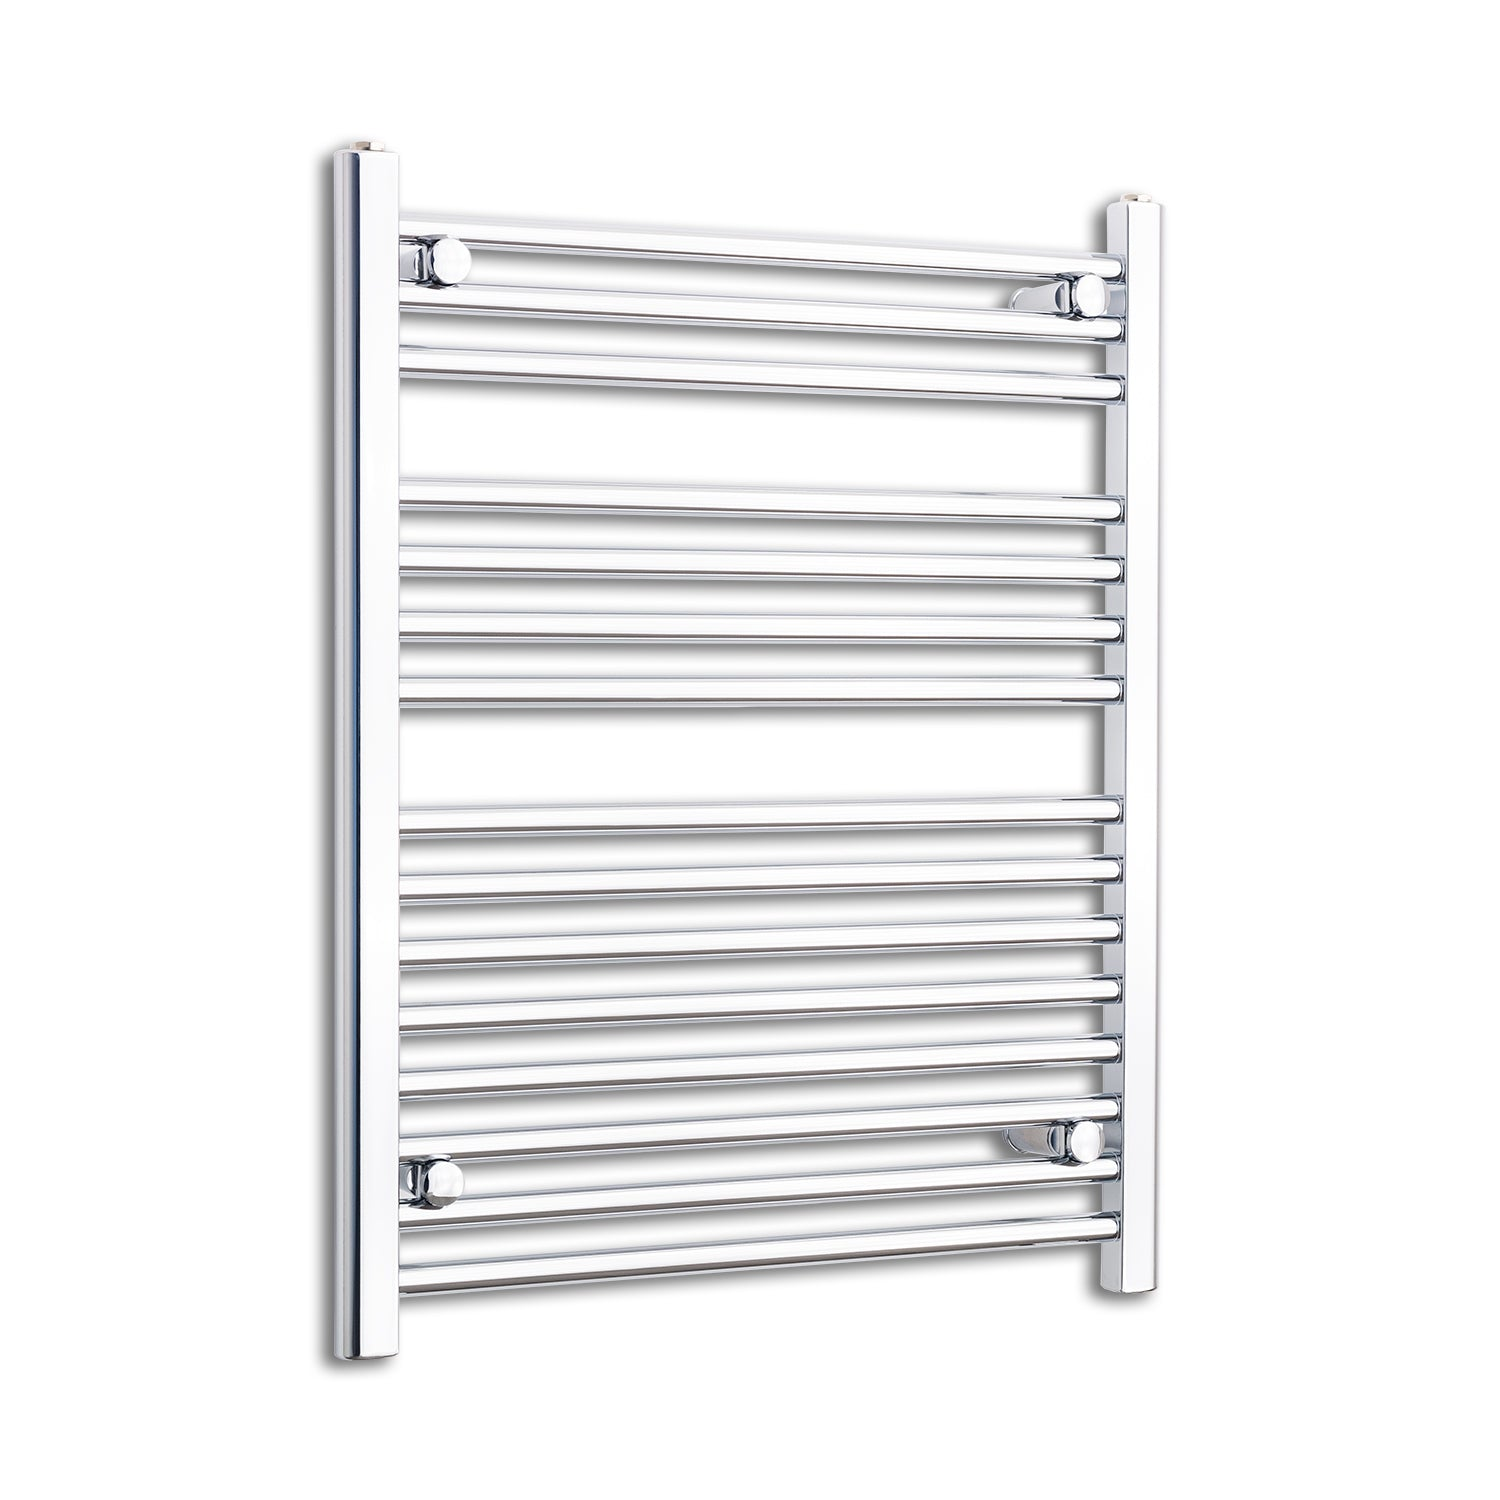 800 mm High x 650 mm Wide Heated Straight Towel Rail Radiator Chrome